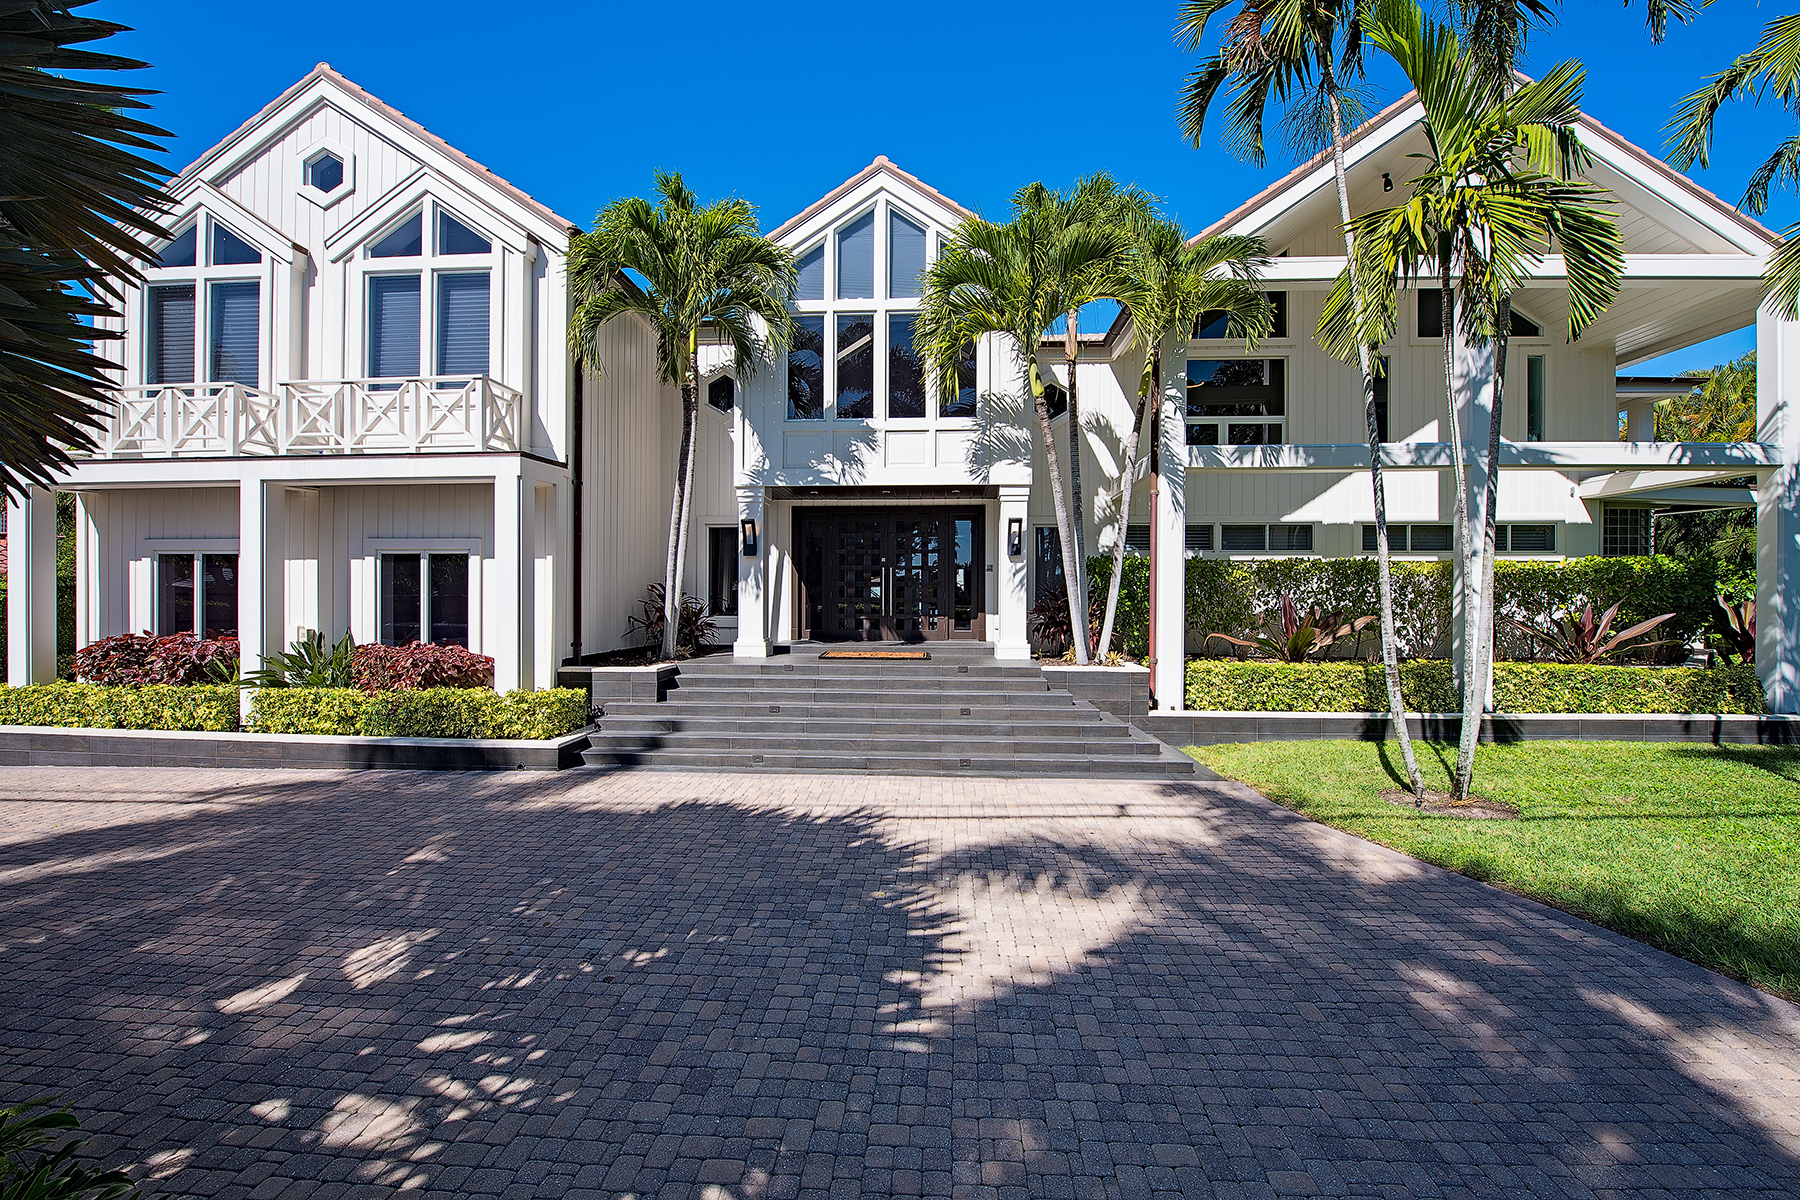 Single Family Home for Sale at PORT ROYAL 711 Galleon Dr Port Royal, Naples, Florida, 34102 United States